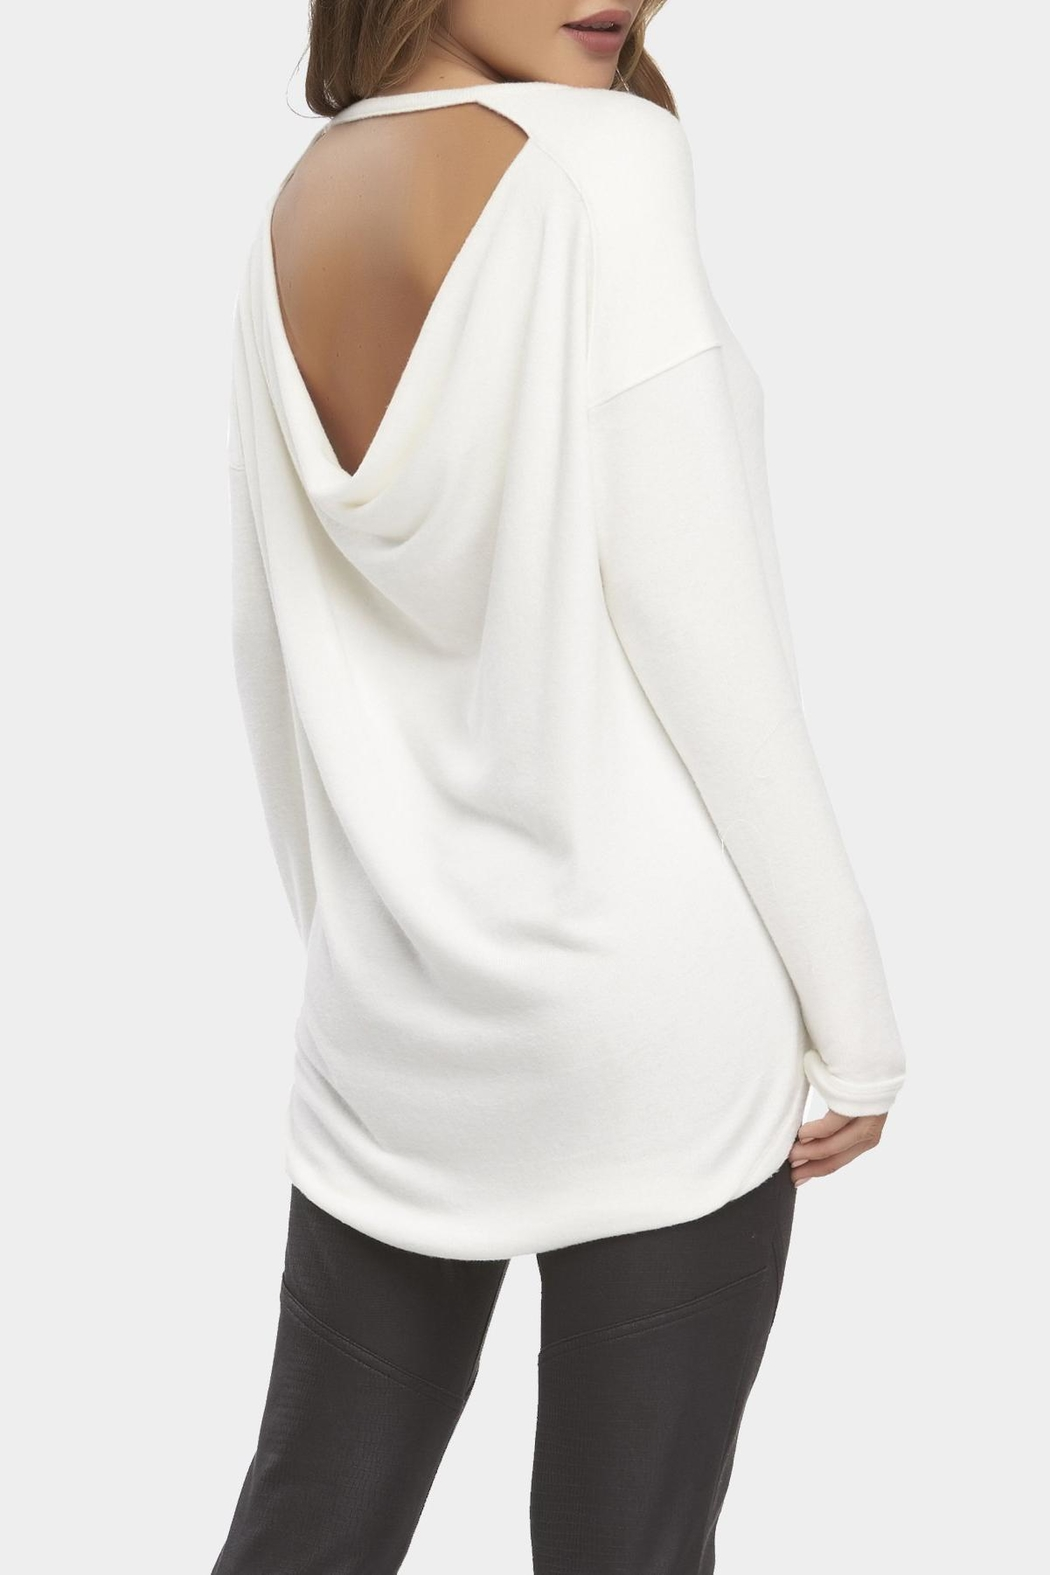 Tart Collections Christian Drape-Back Sweater - Front Full Image